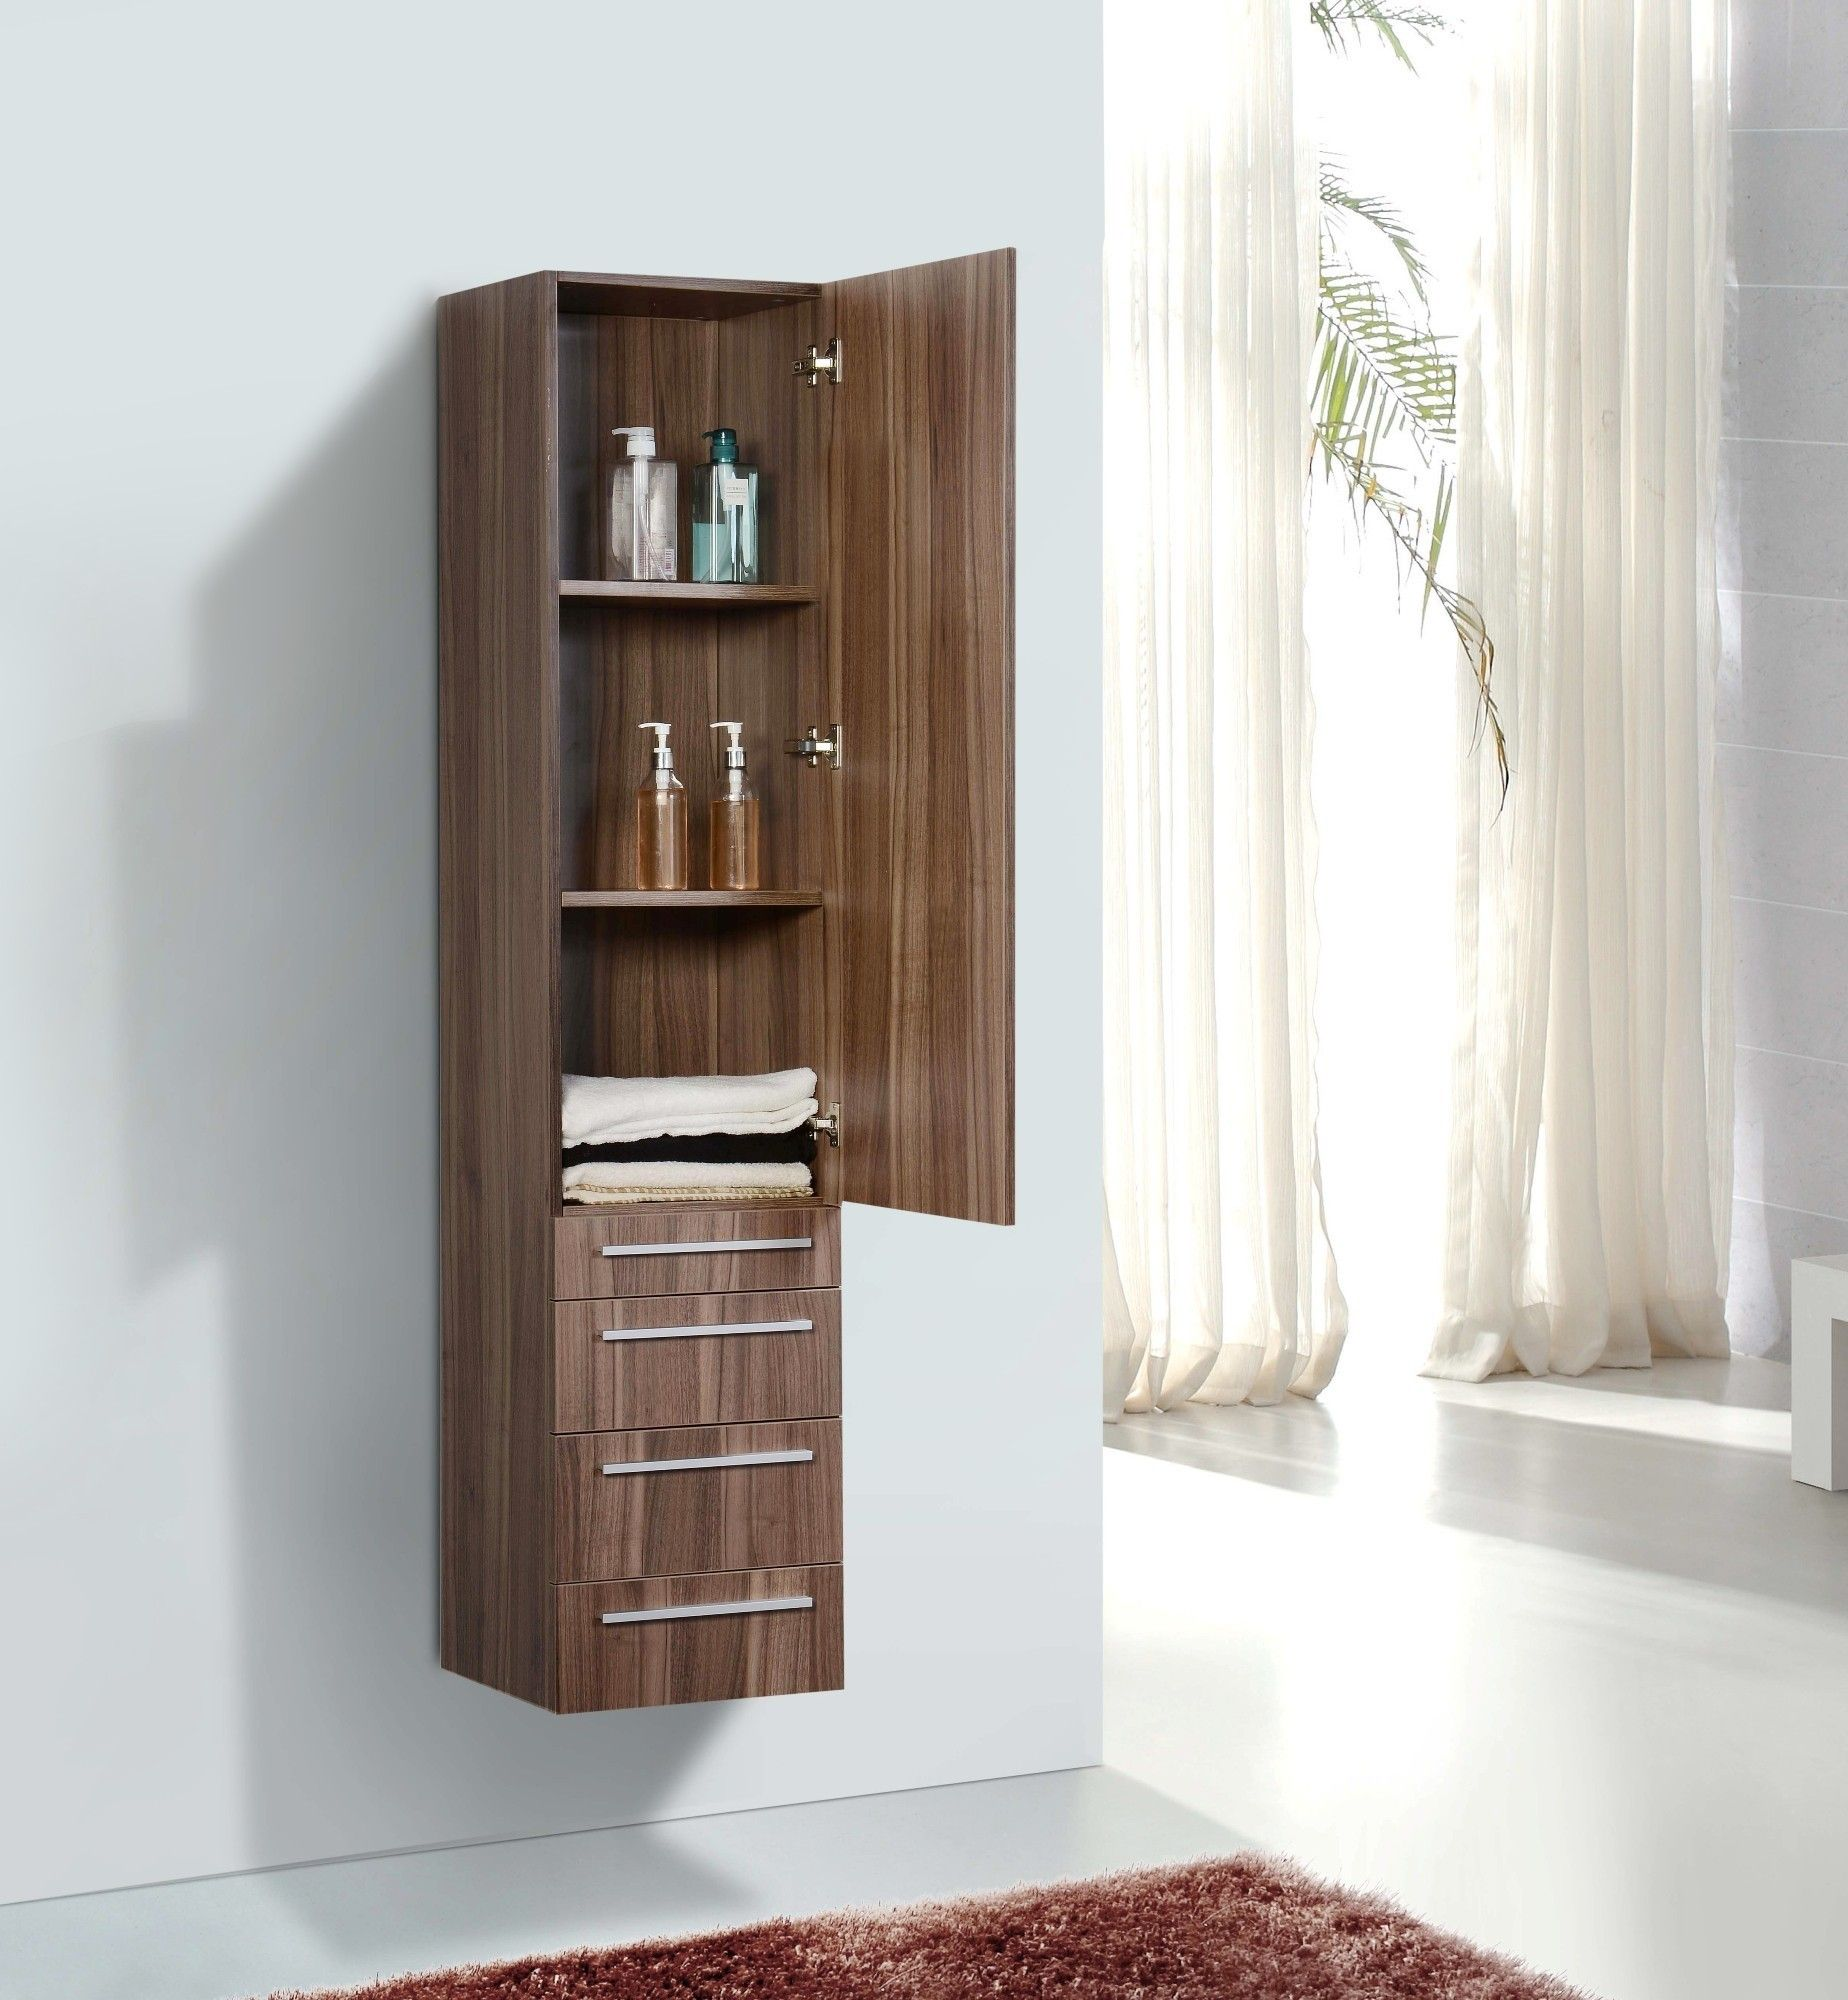 Brown Harwood Floating Linen Cabinet On White Wall Panel And White ...